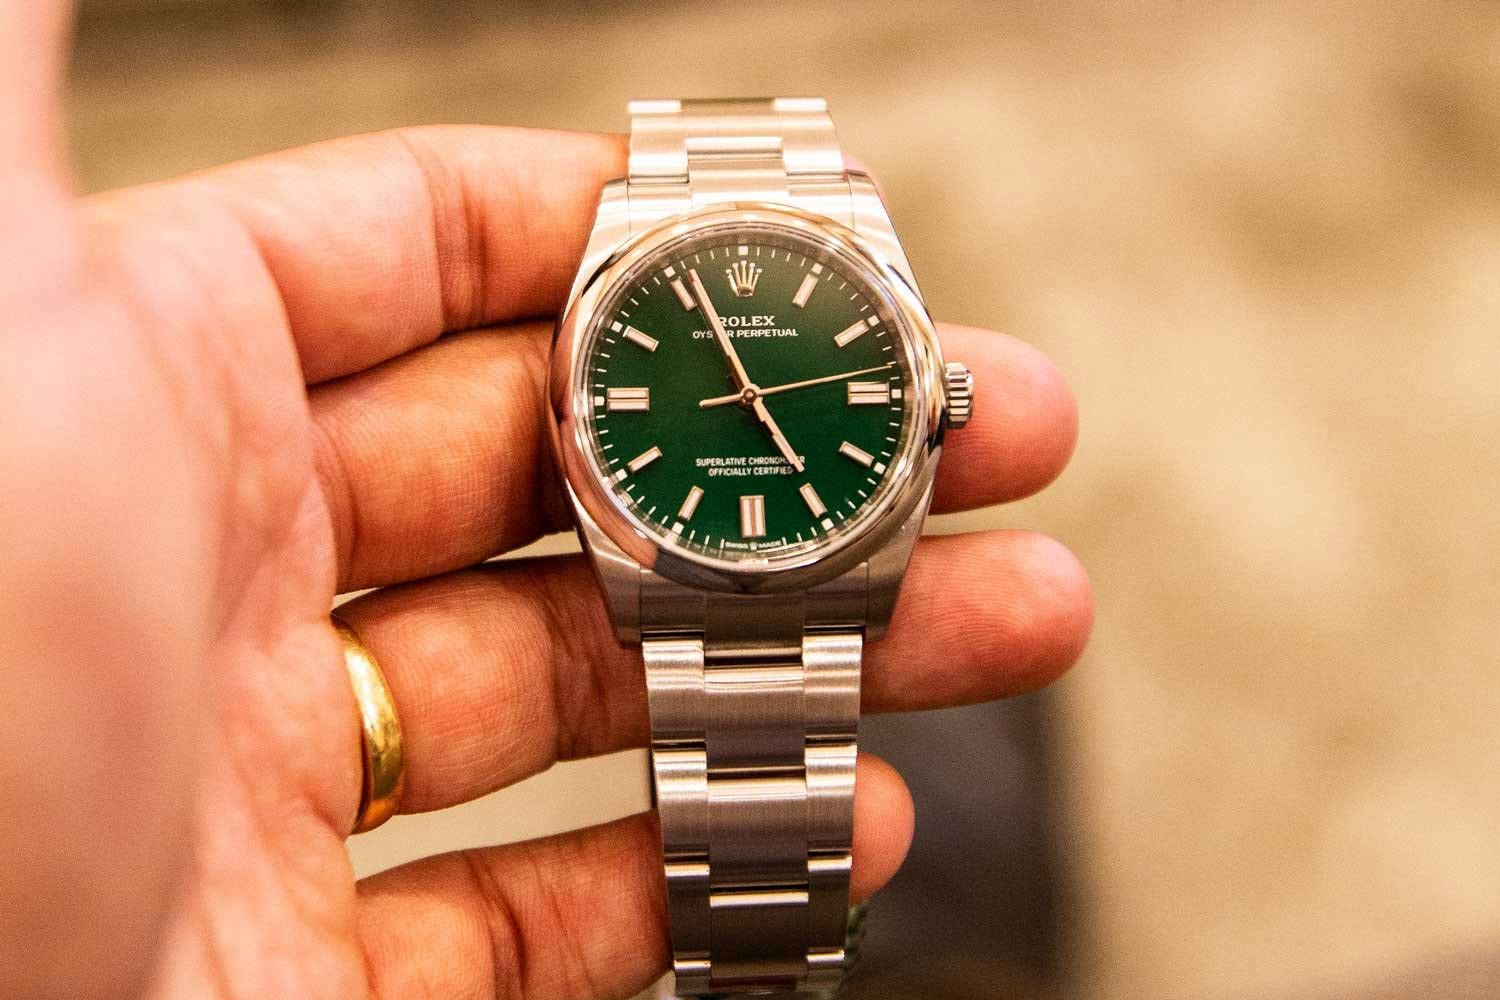 The modern Rolex Oyster bracelet in 904L steel. Rolex acquired Gay Freres in 1998.